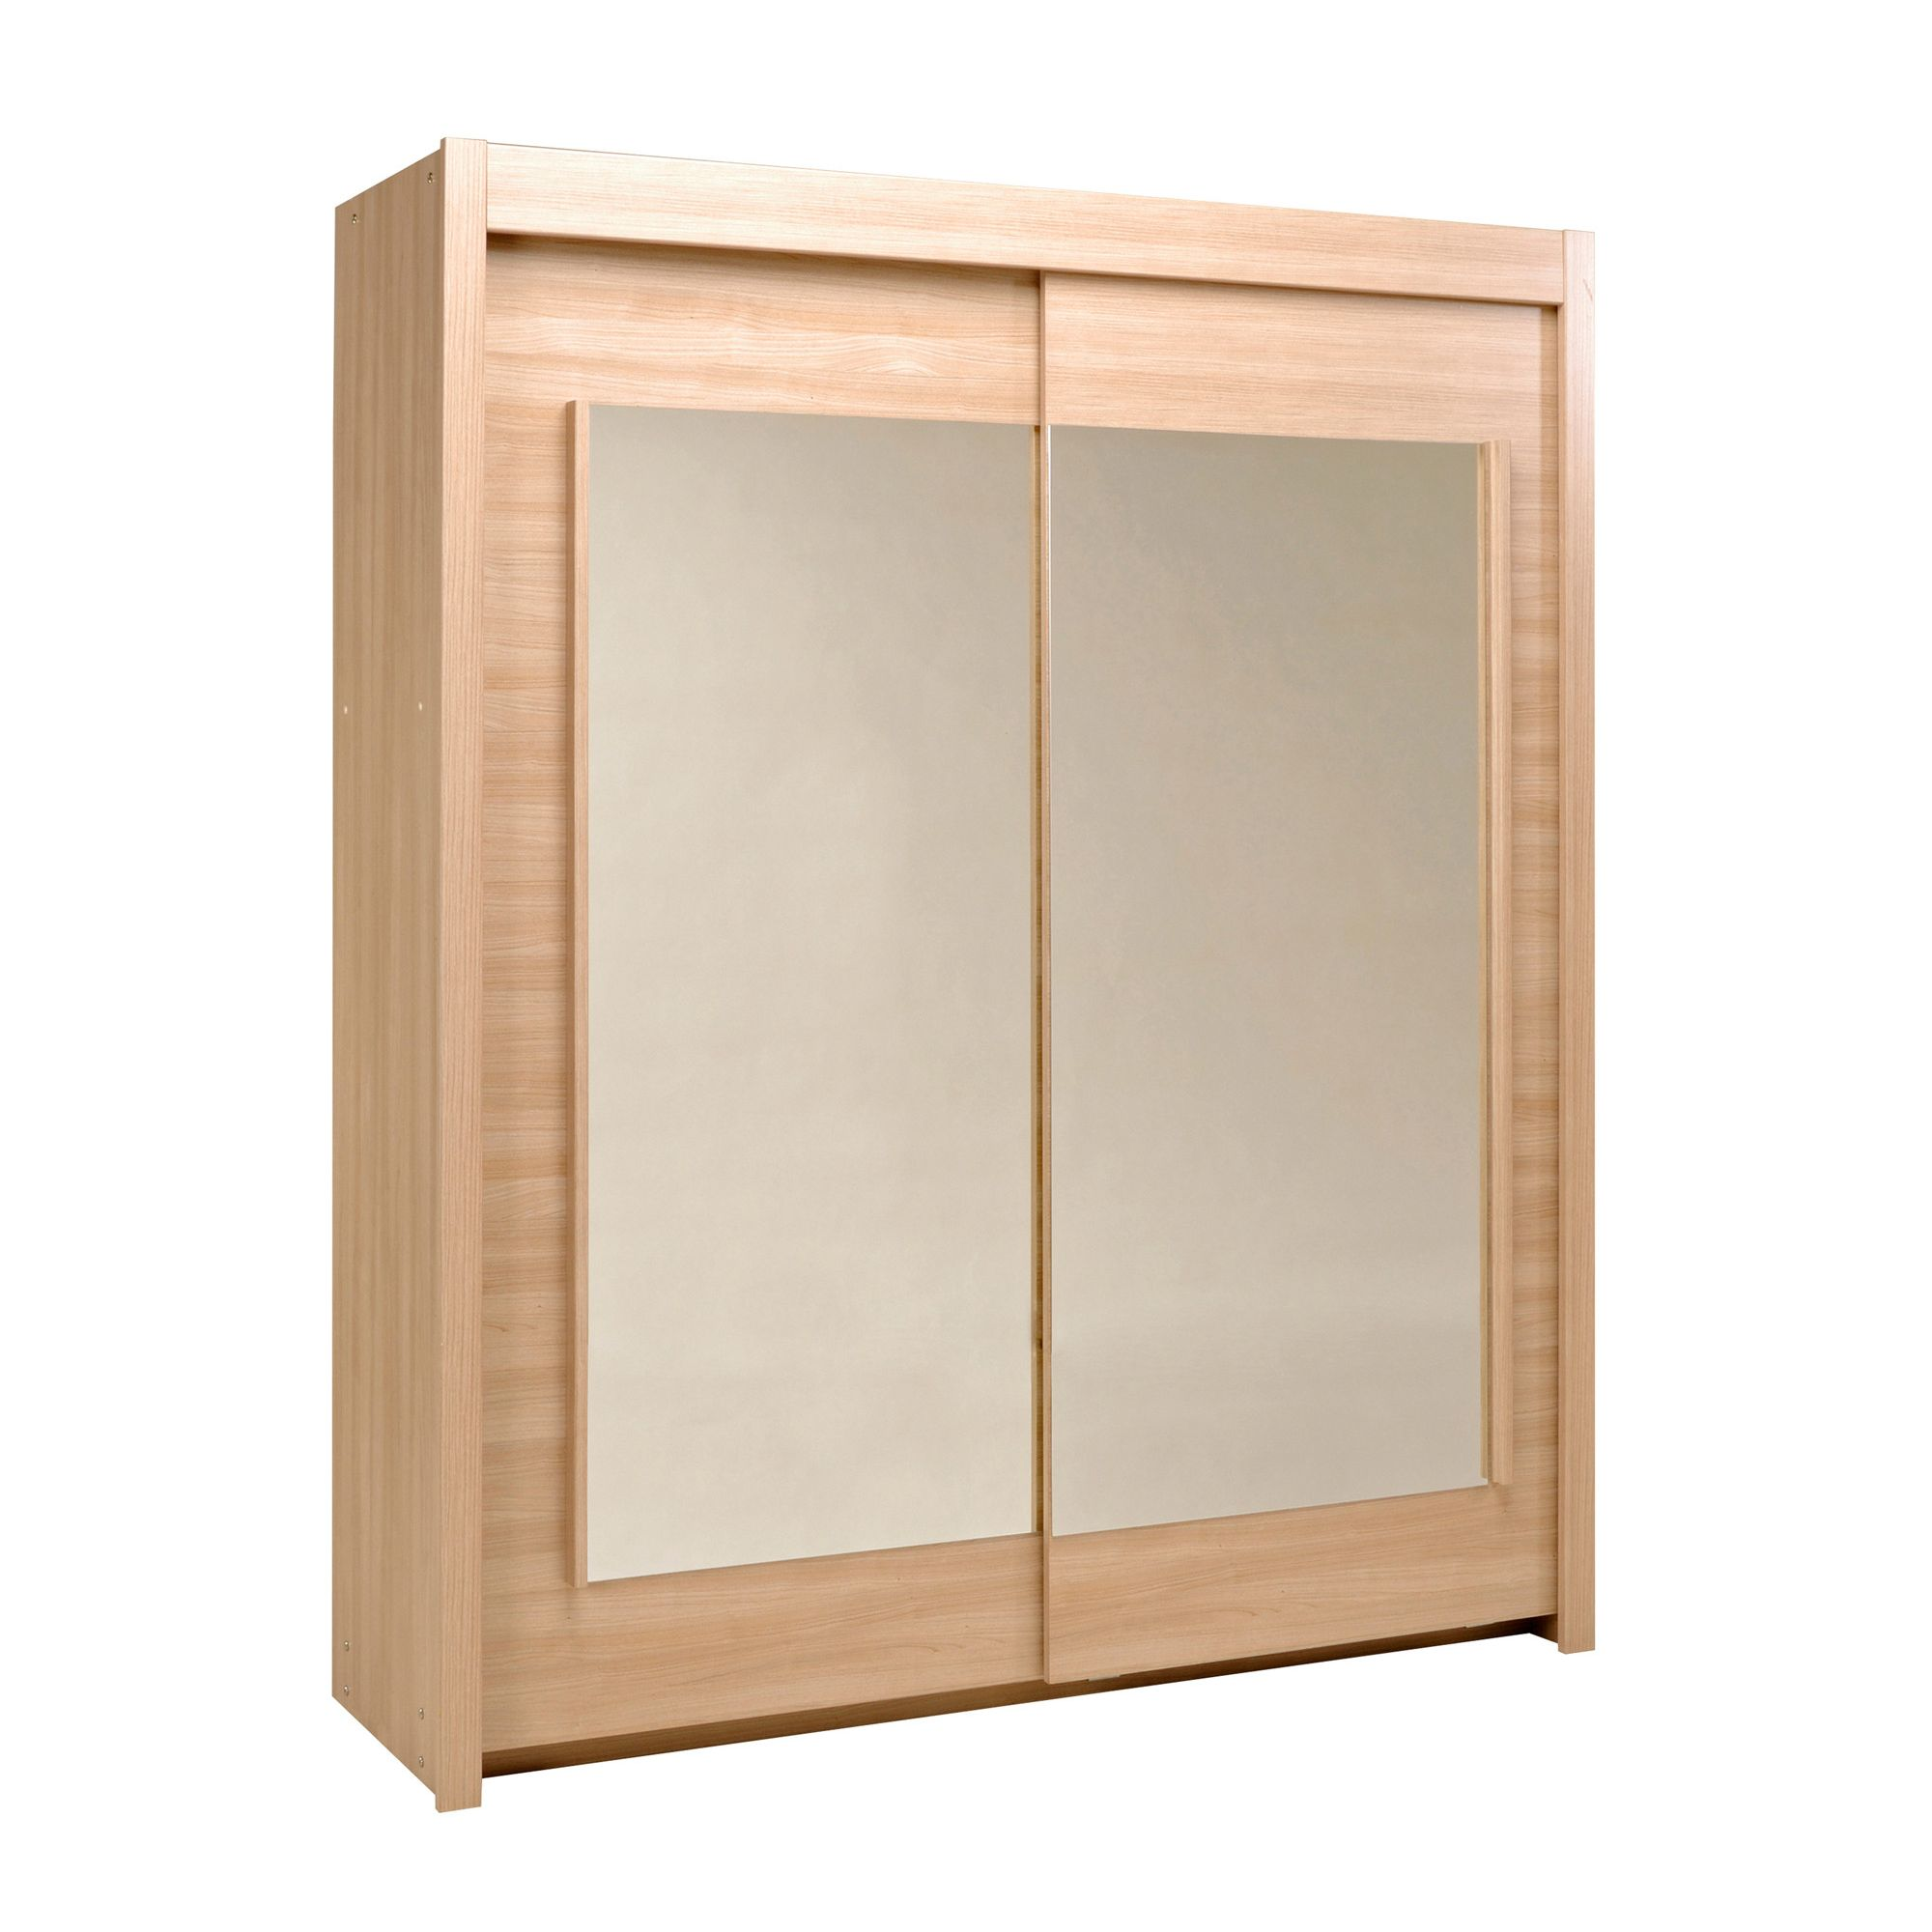 Parisot Life Sliding Wardrobe in Bruges at Tesco Direct